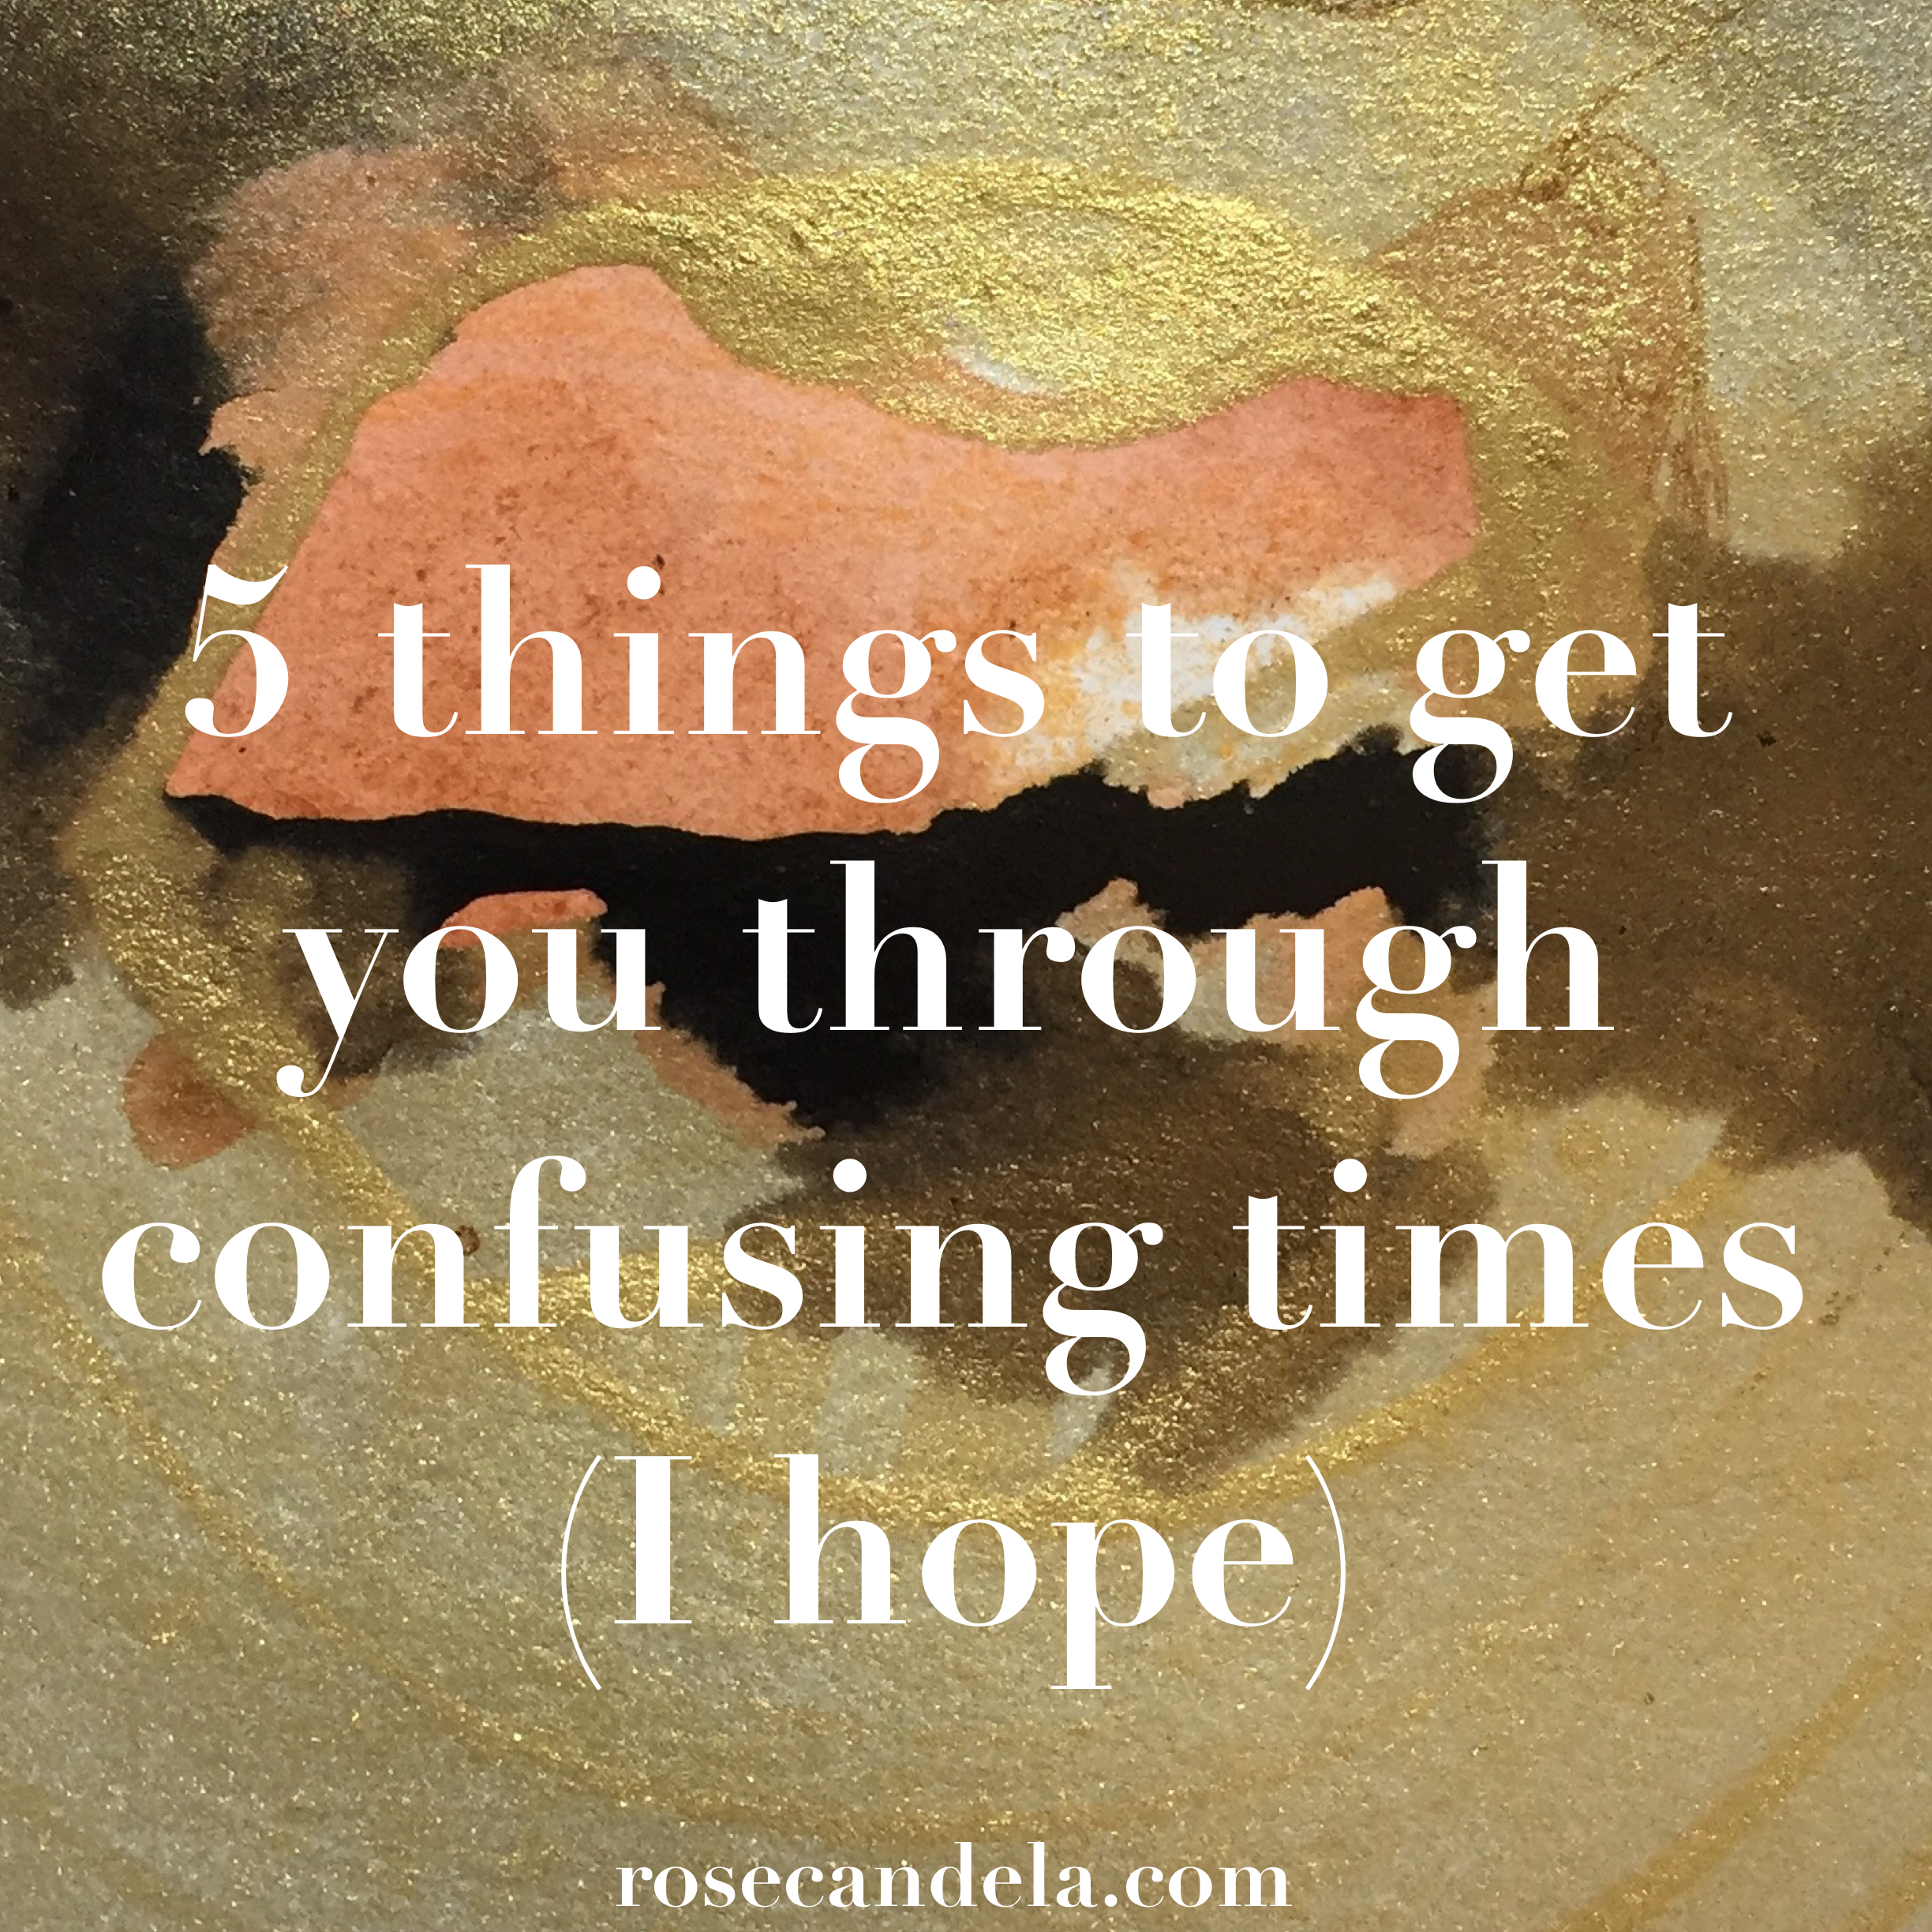 These 5 things will get you through confusing times (I hope)